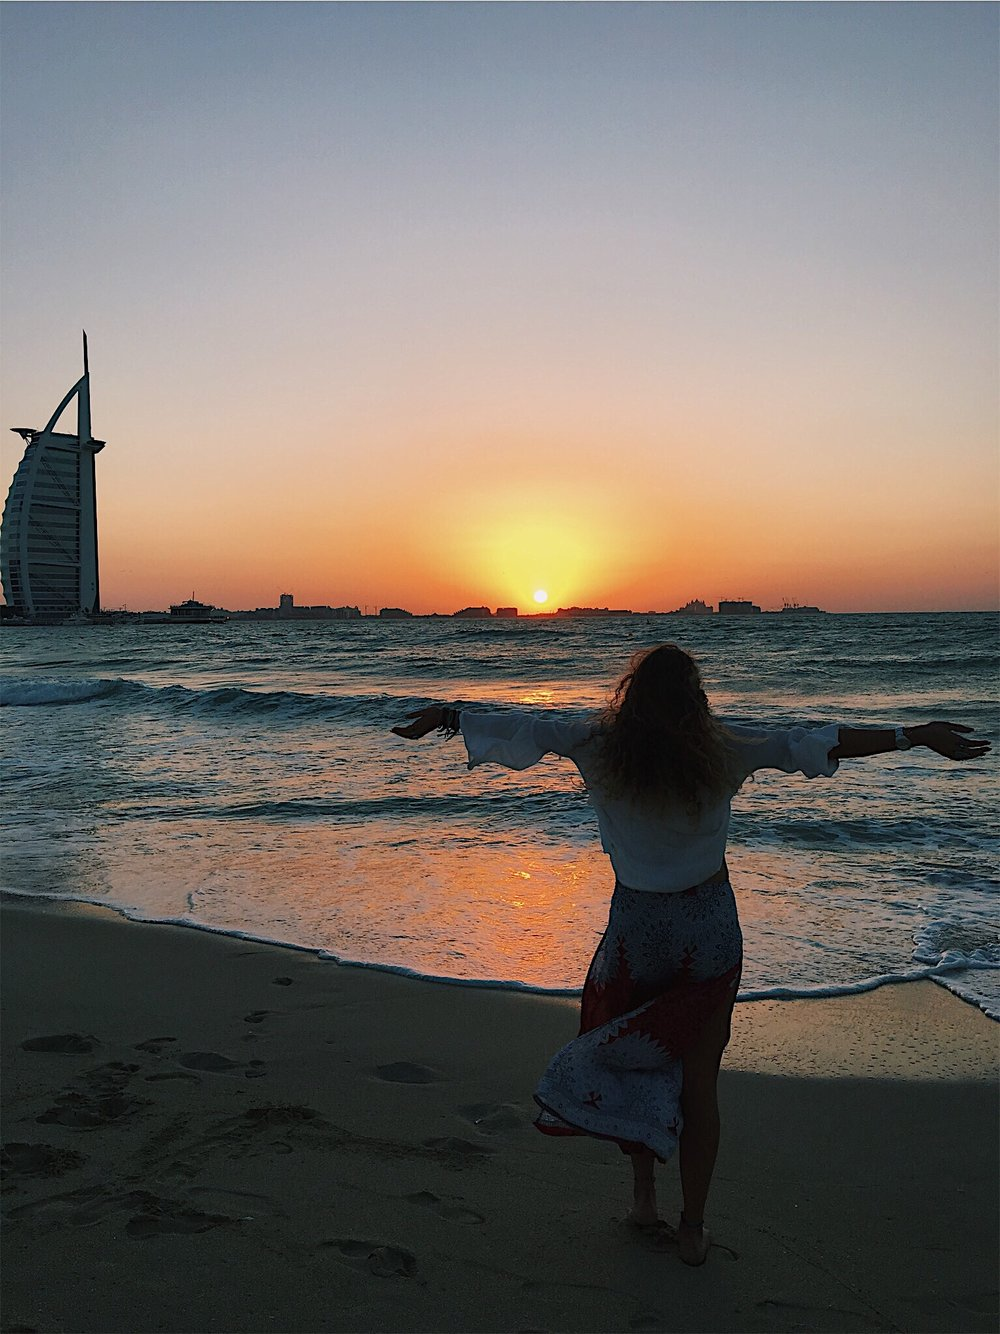 sunset@burjalarab.jpeg